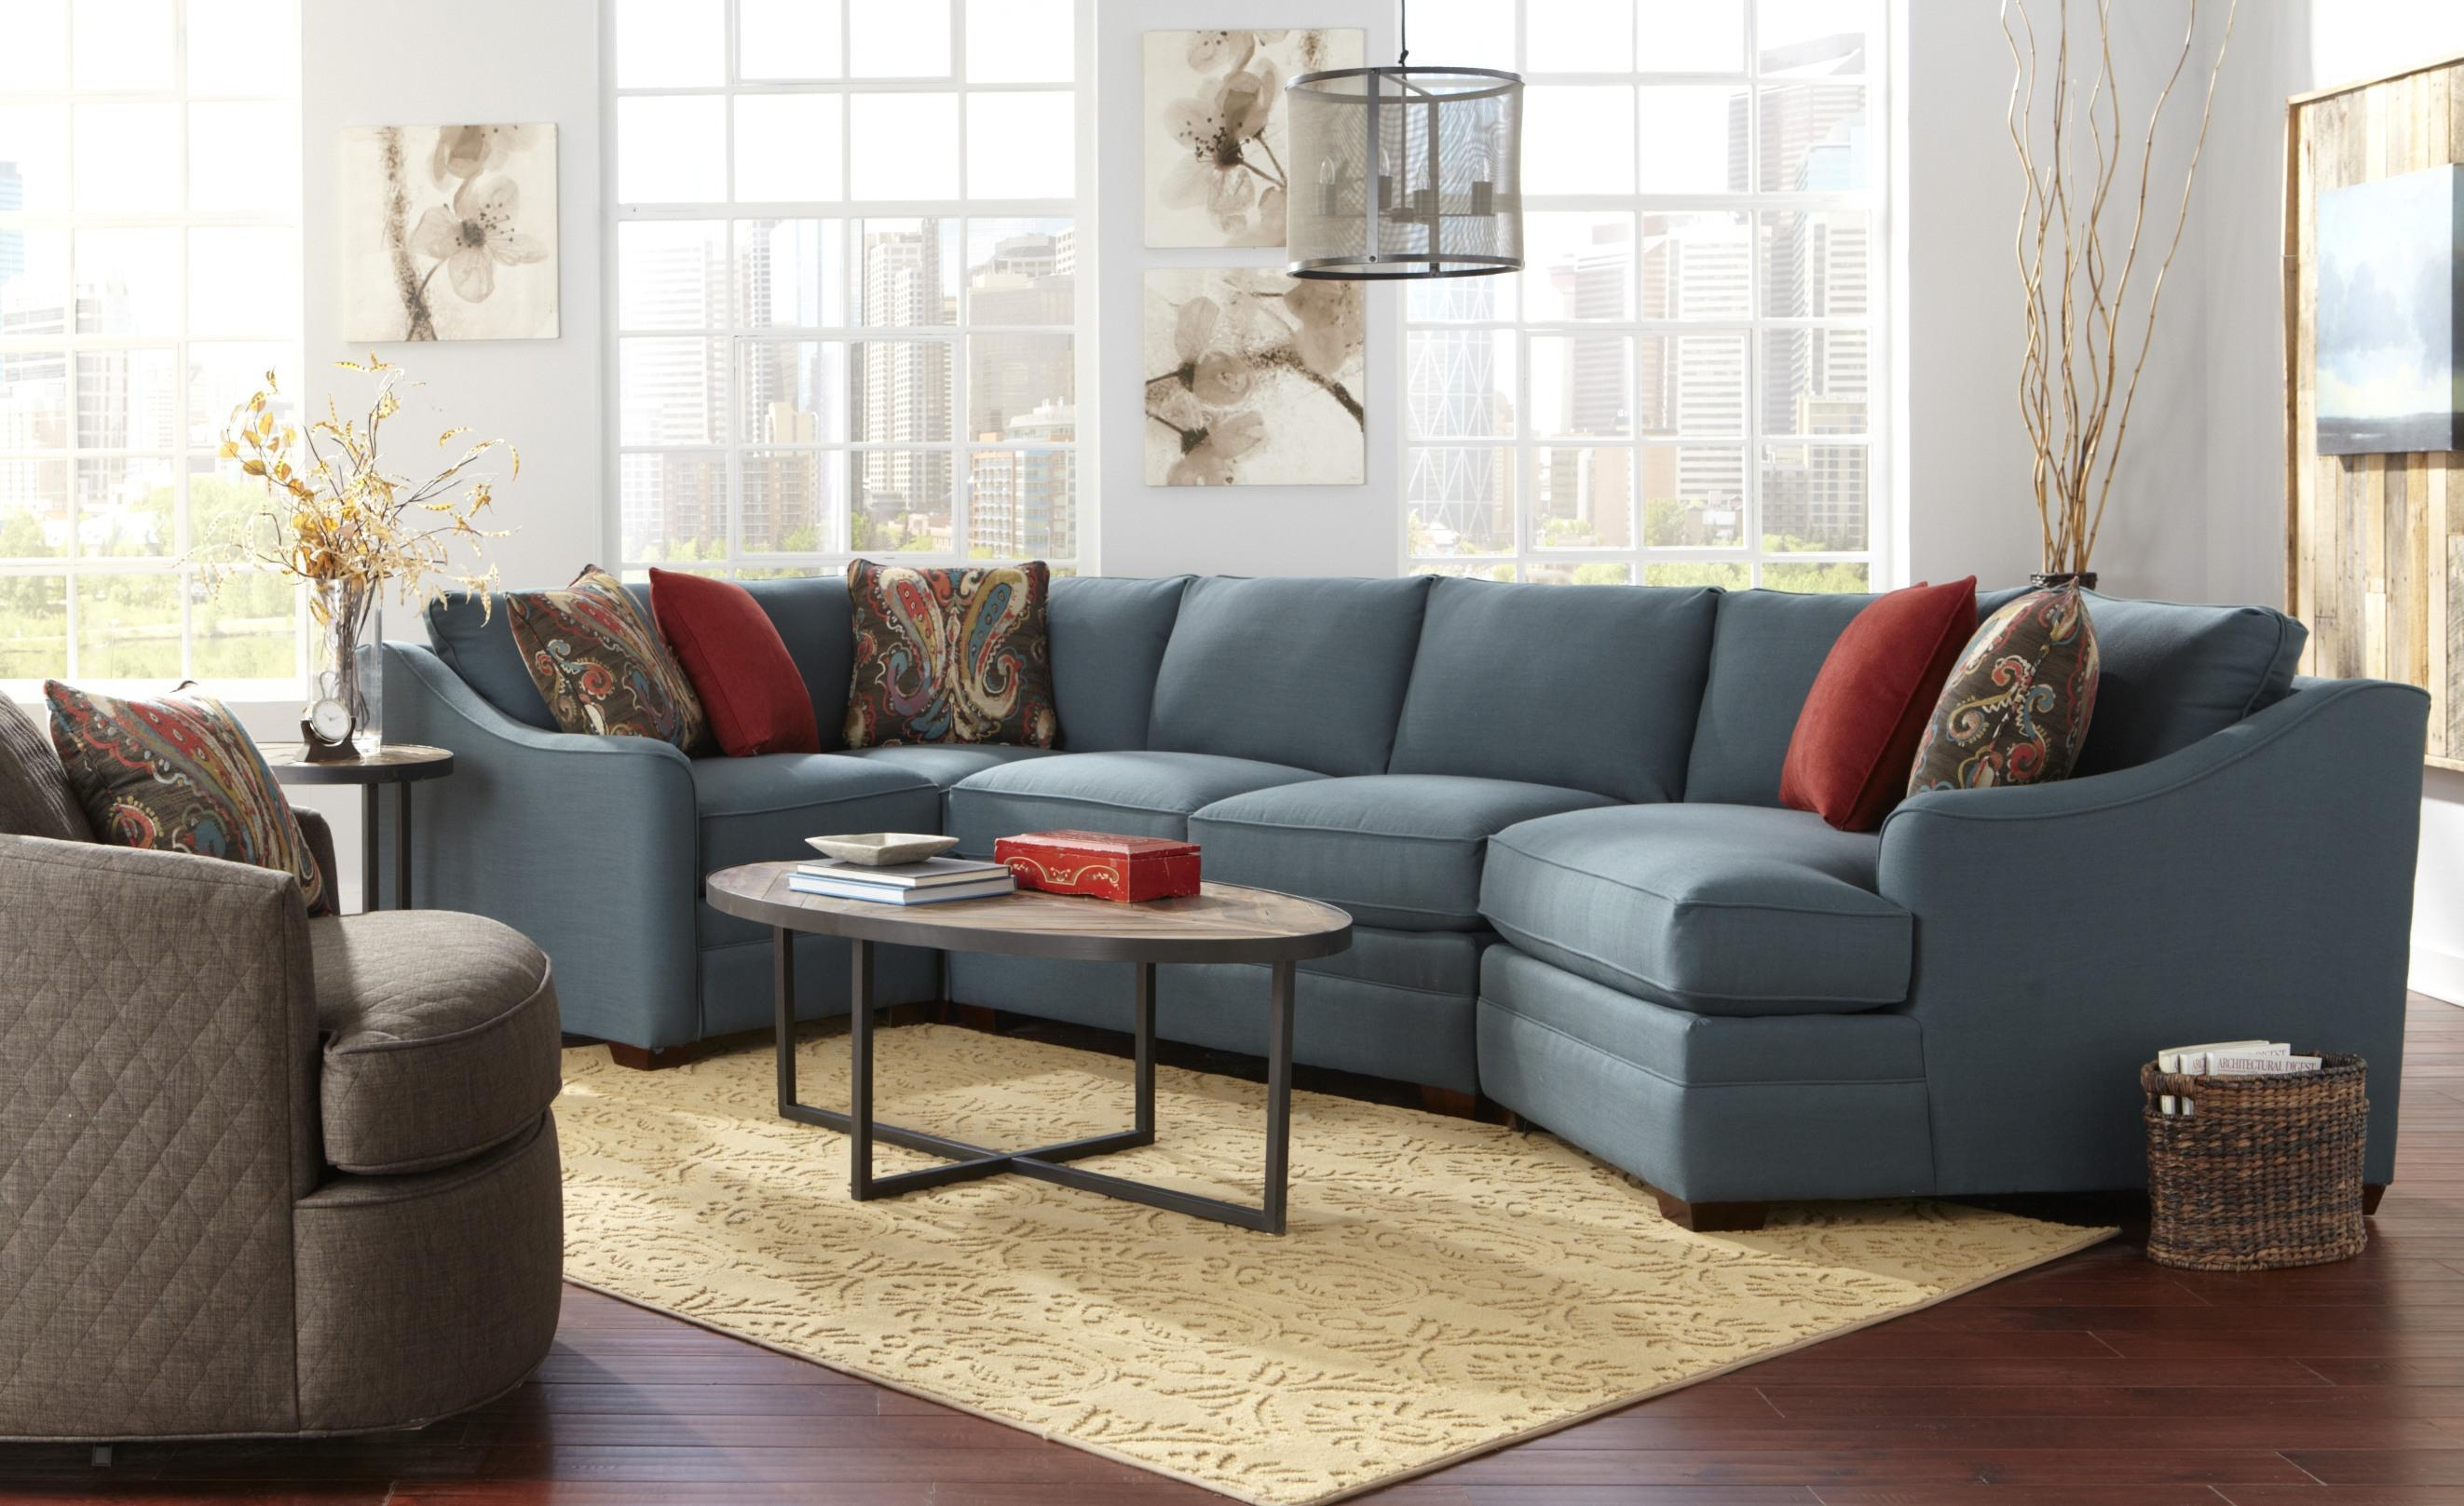 Furnitures: Fill Your Home With Luxury Craftmaster Furniture For Within Craftsman Sectional Sofa (Image 14 of 15)